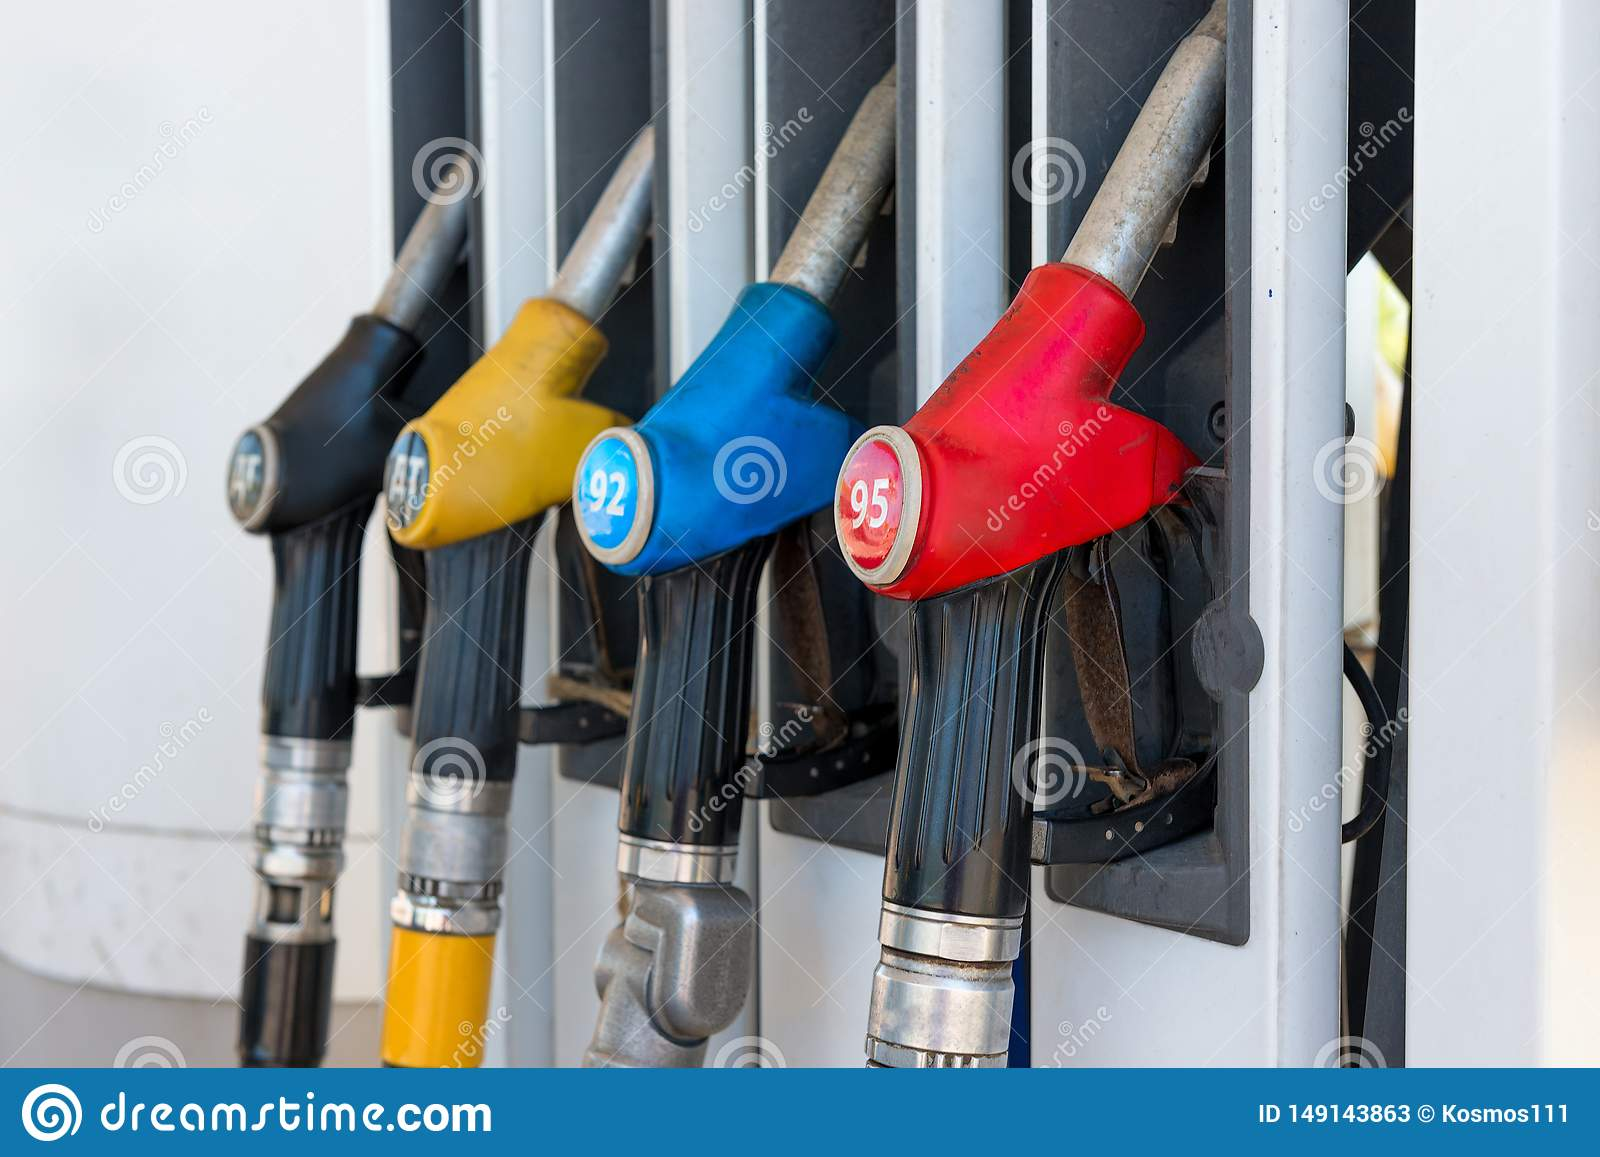 Fuel Guns At A Gas Station Stock Image  Image Of Business